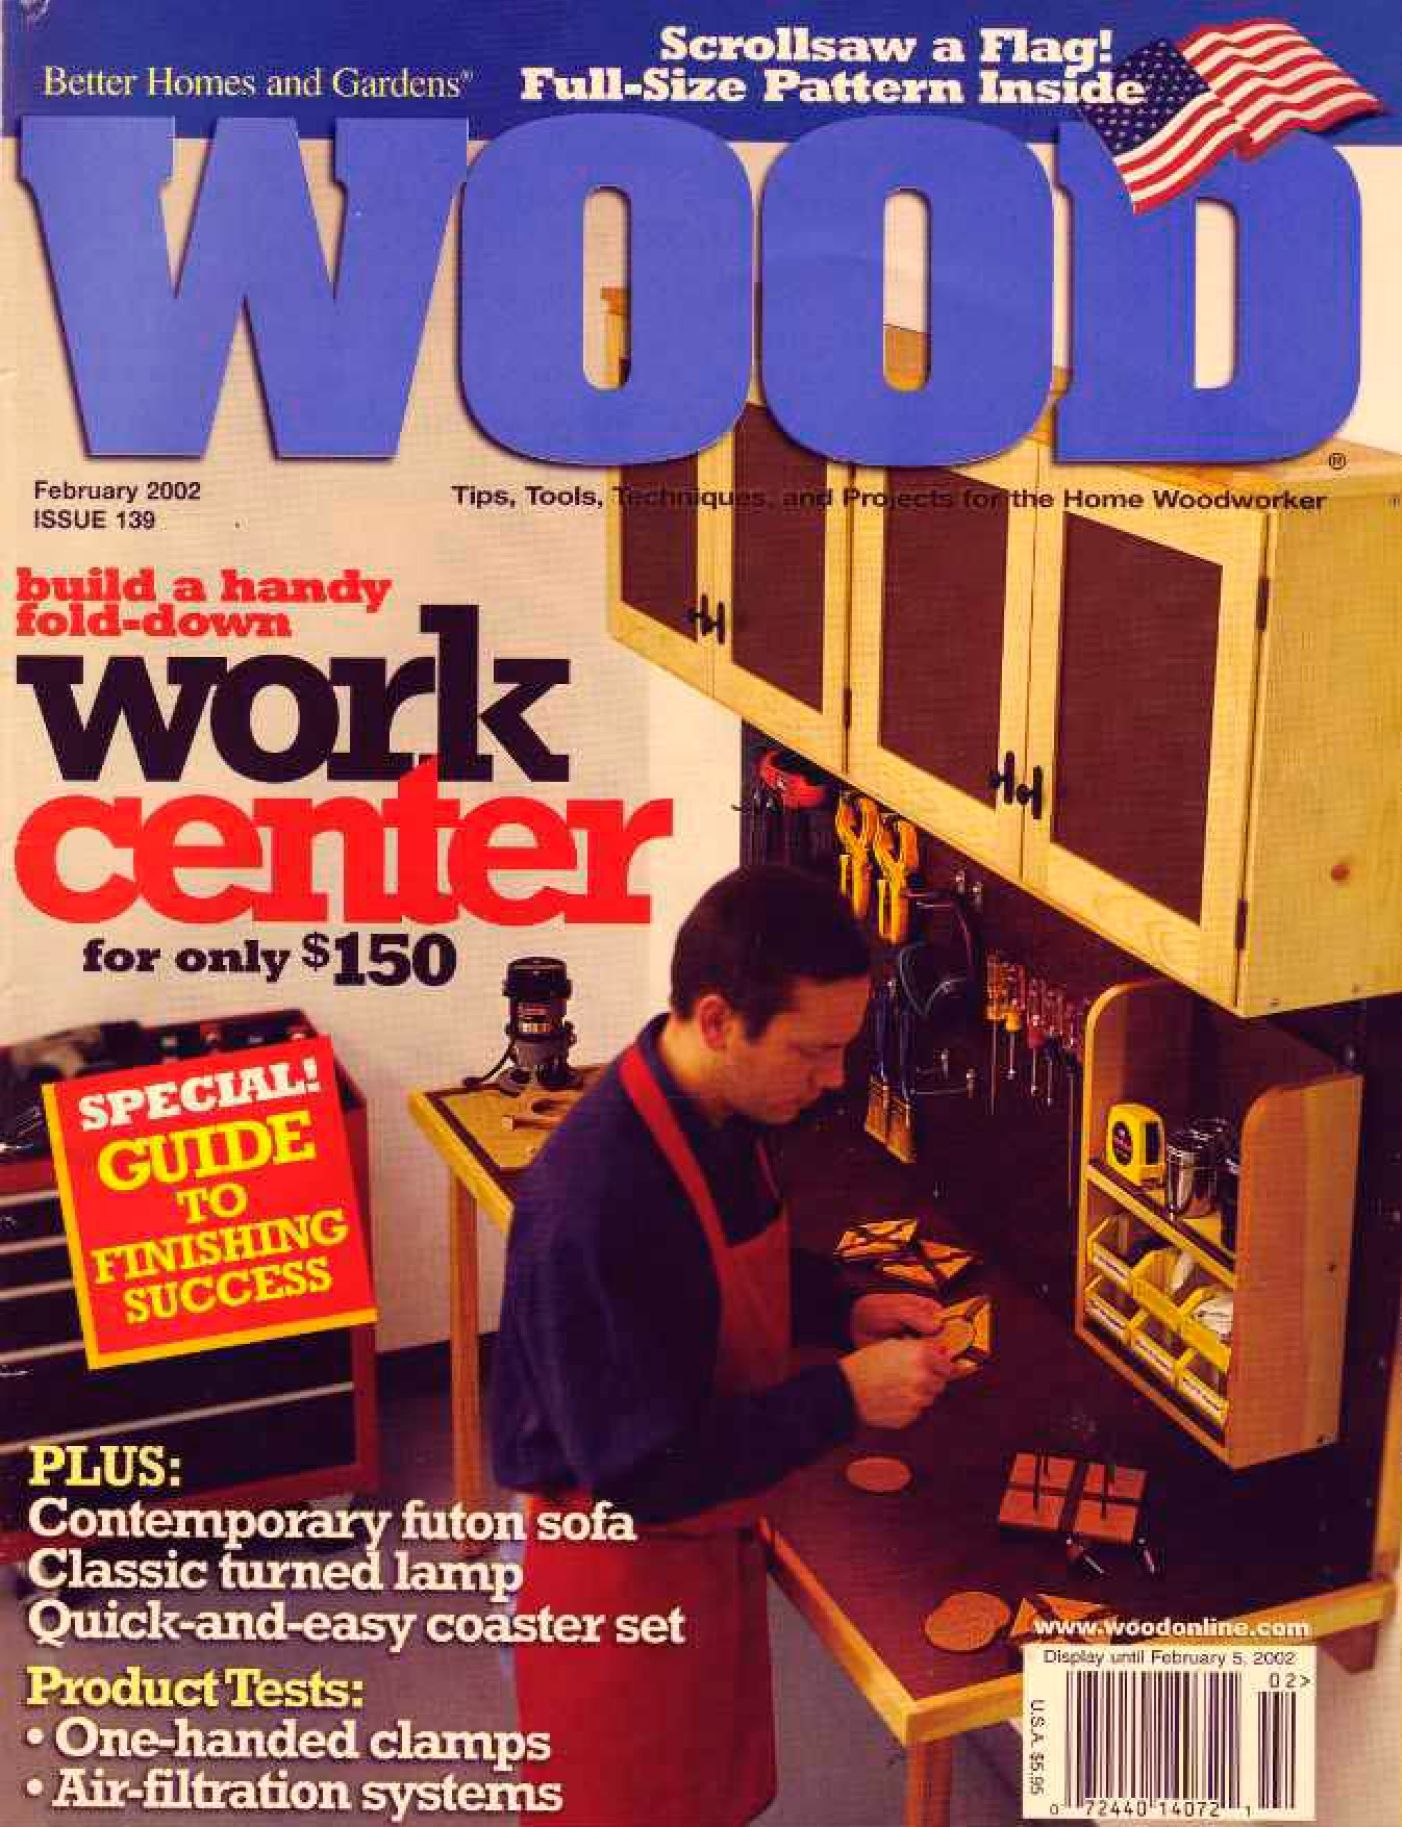 WOOD MAGAZINE ISSUE 248 SPTEMBER 2017, THE WORLD'S LEADING WOODWORKING RESOURCE.